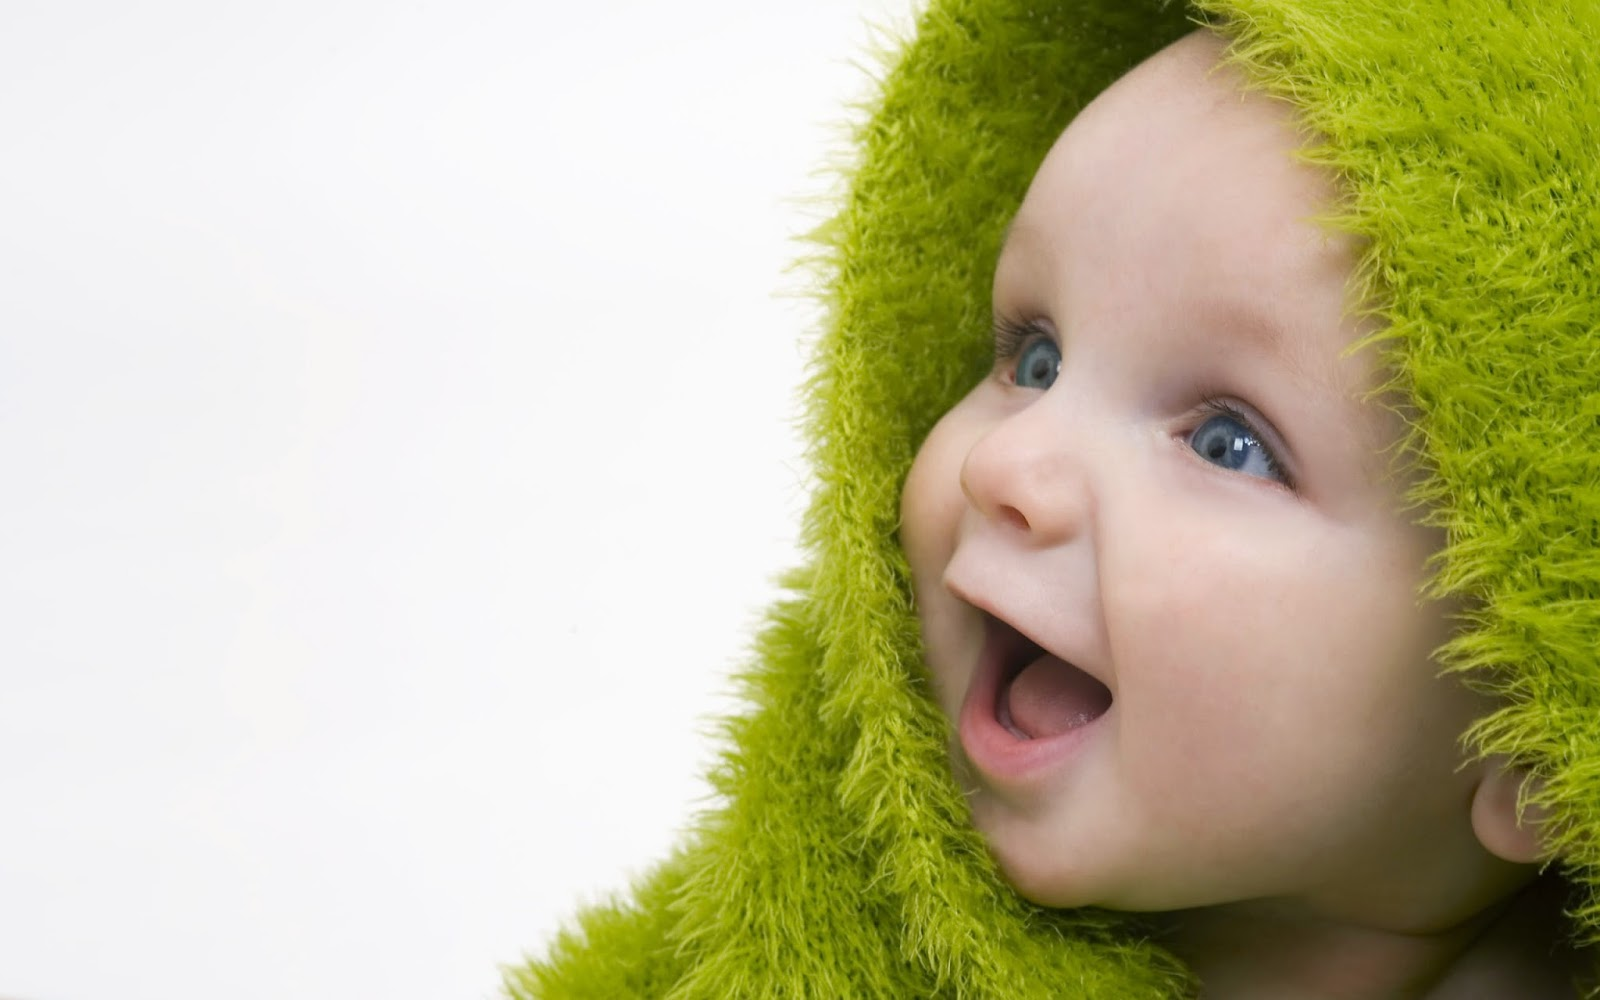 Cute Baby Hd Wallpapers Free Download Lab4photo